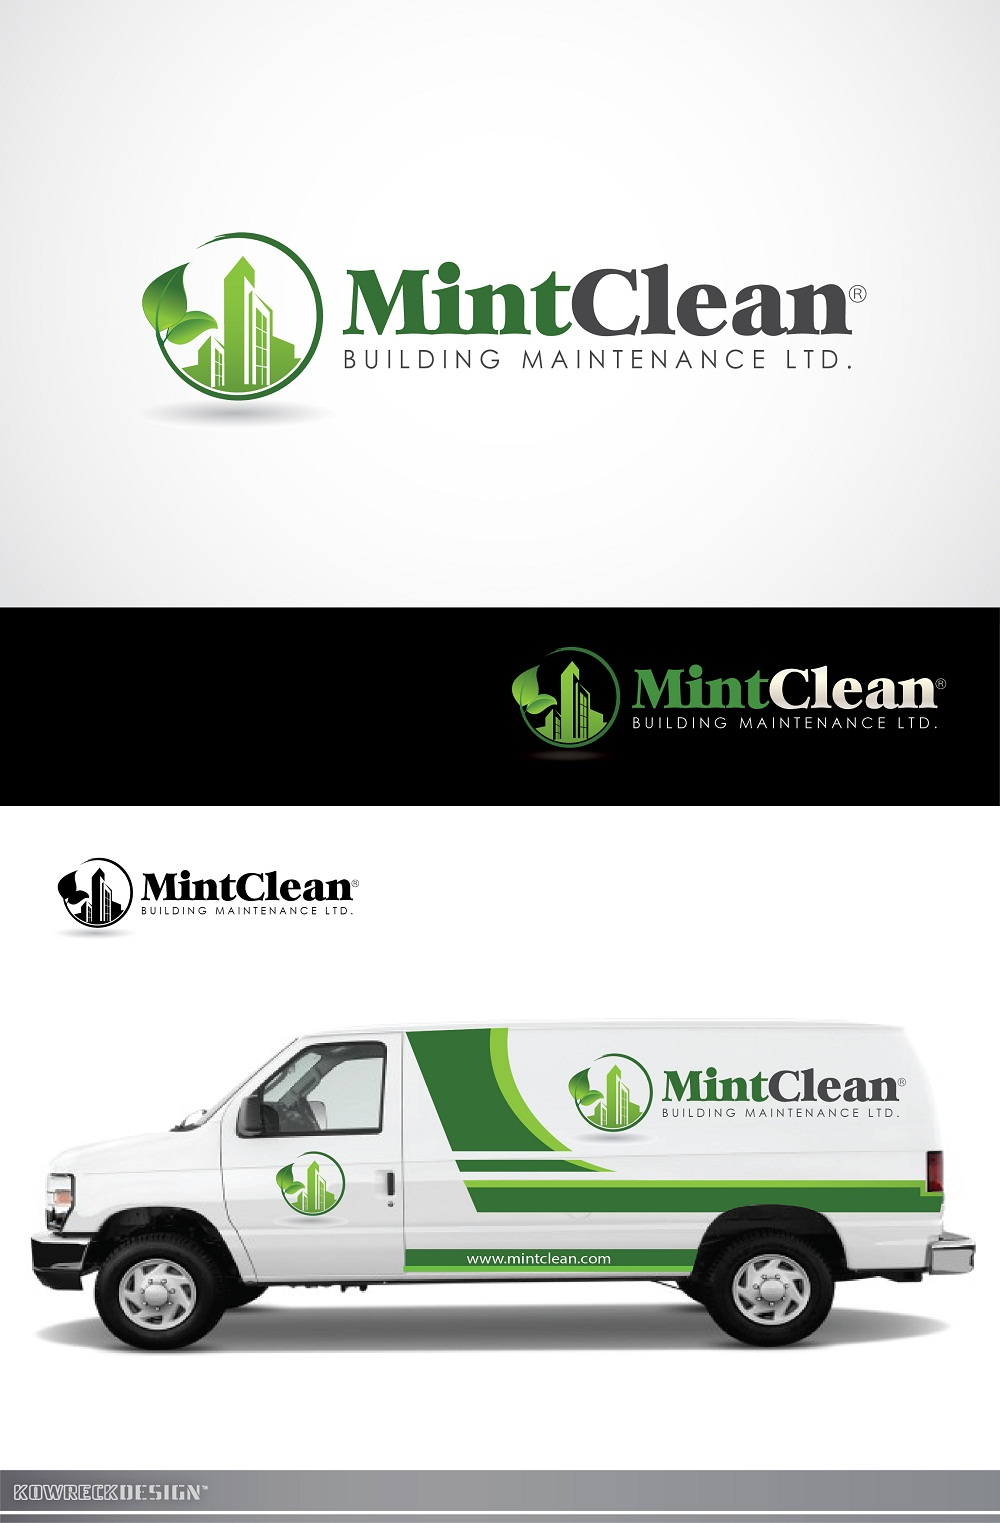 Logo Design by kowreck - Entry No. 138 in the Logo Design Contest MintClean Building Maintenance Ltd. Logo Design.